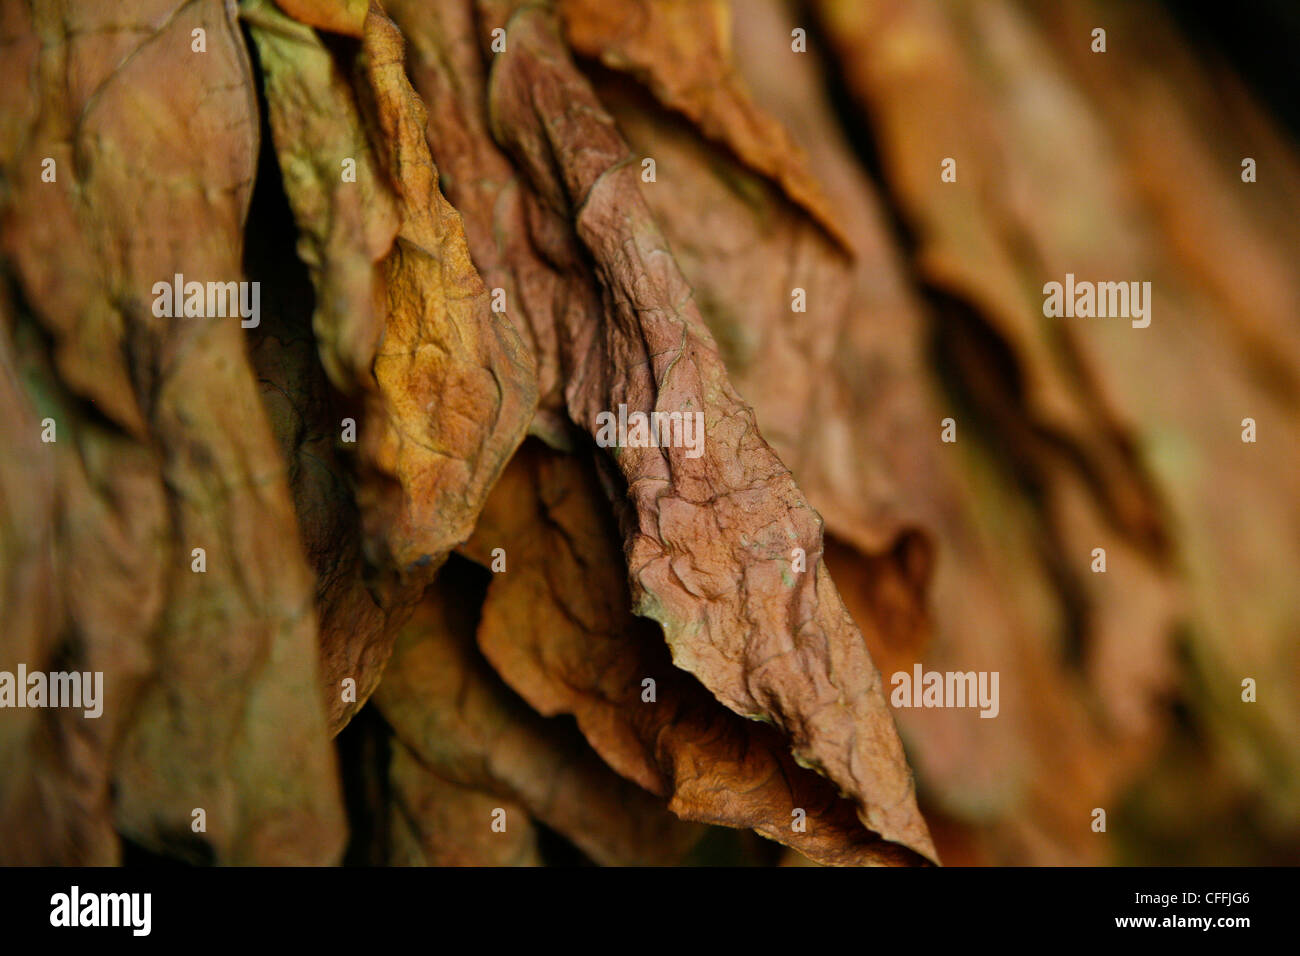 Tobacco Leaves, Detail - Stock Image